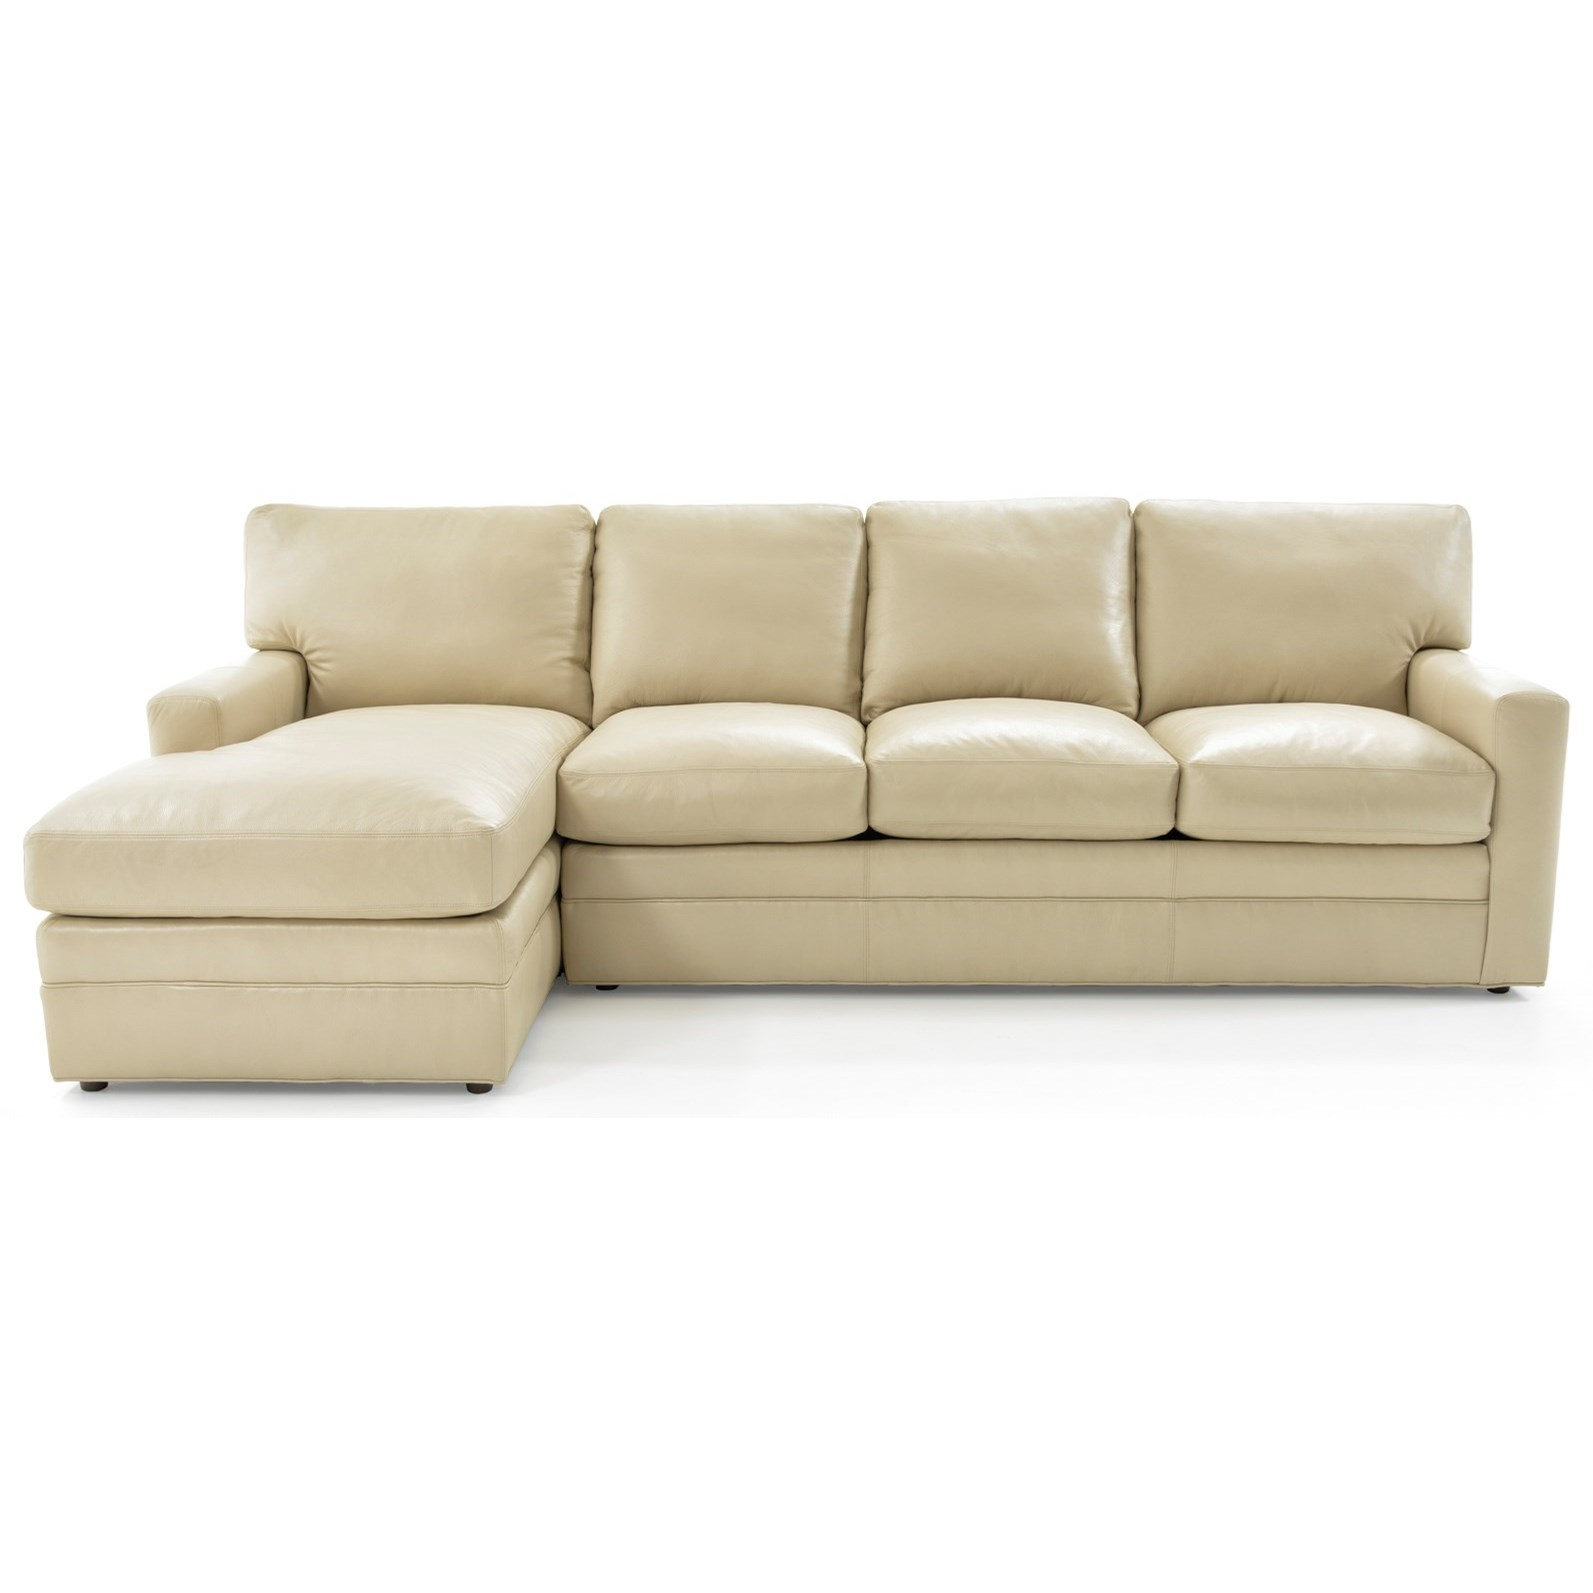 Whittemore-Sherrill 442 2 Pc L-Shape Sectional Sofa w/ LAF Chaise - Item Number: 442-35+442-43-MONTAN 445 LINEN